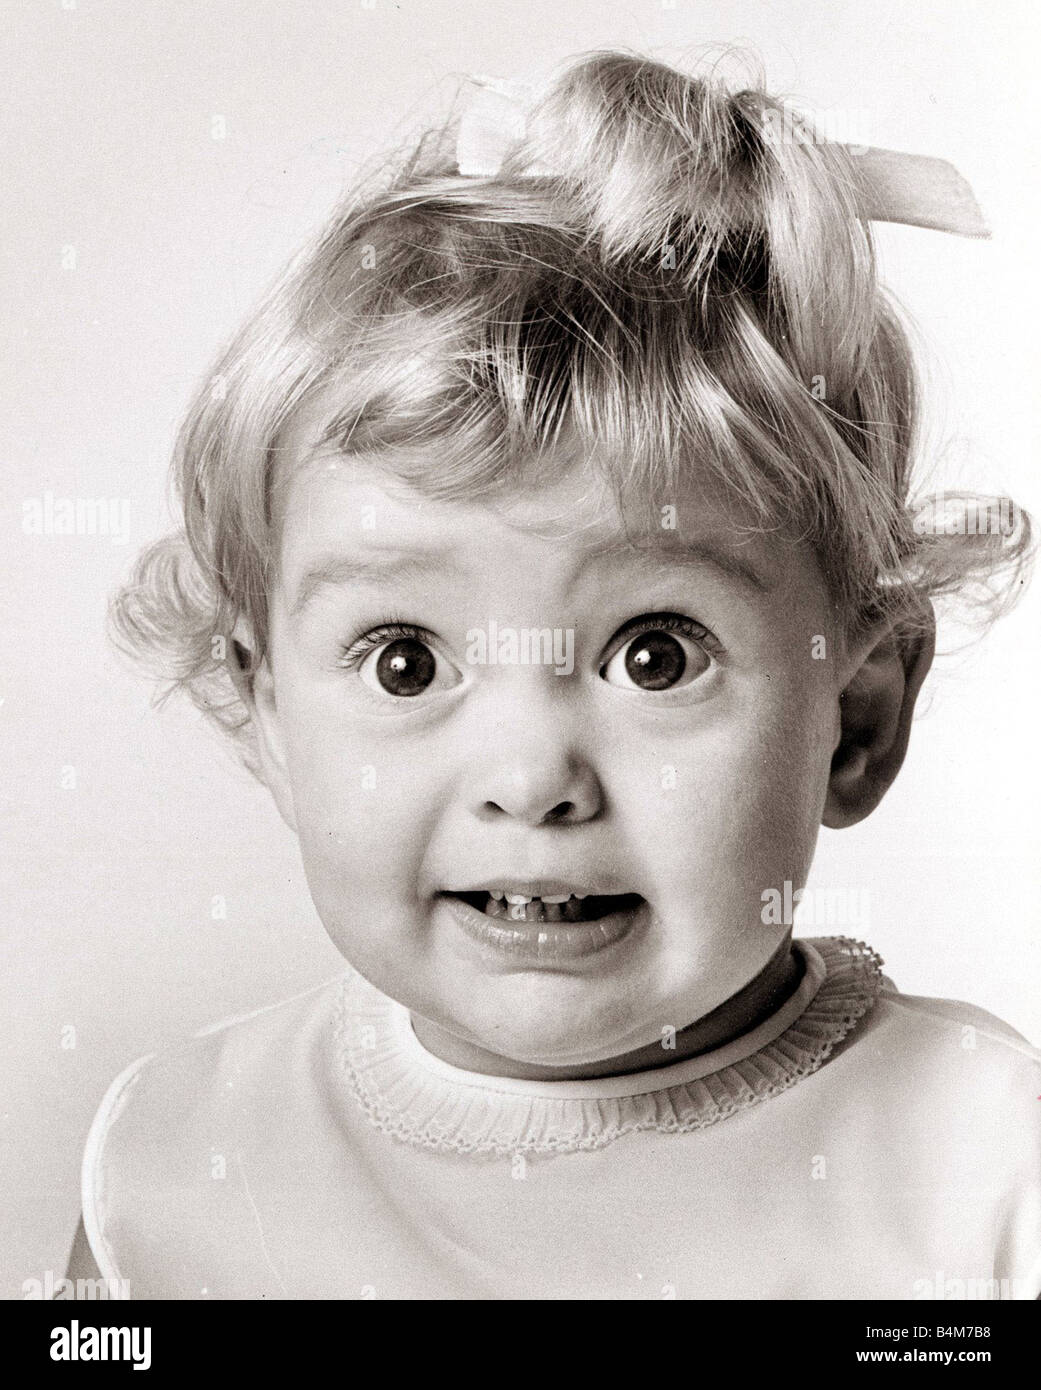 Little girl with her eyes wide open circa 1970 - Stock Image